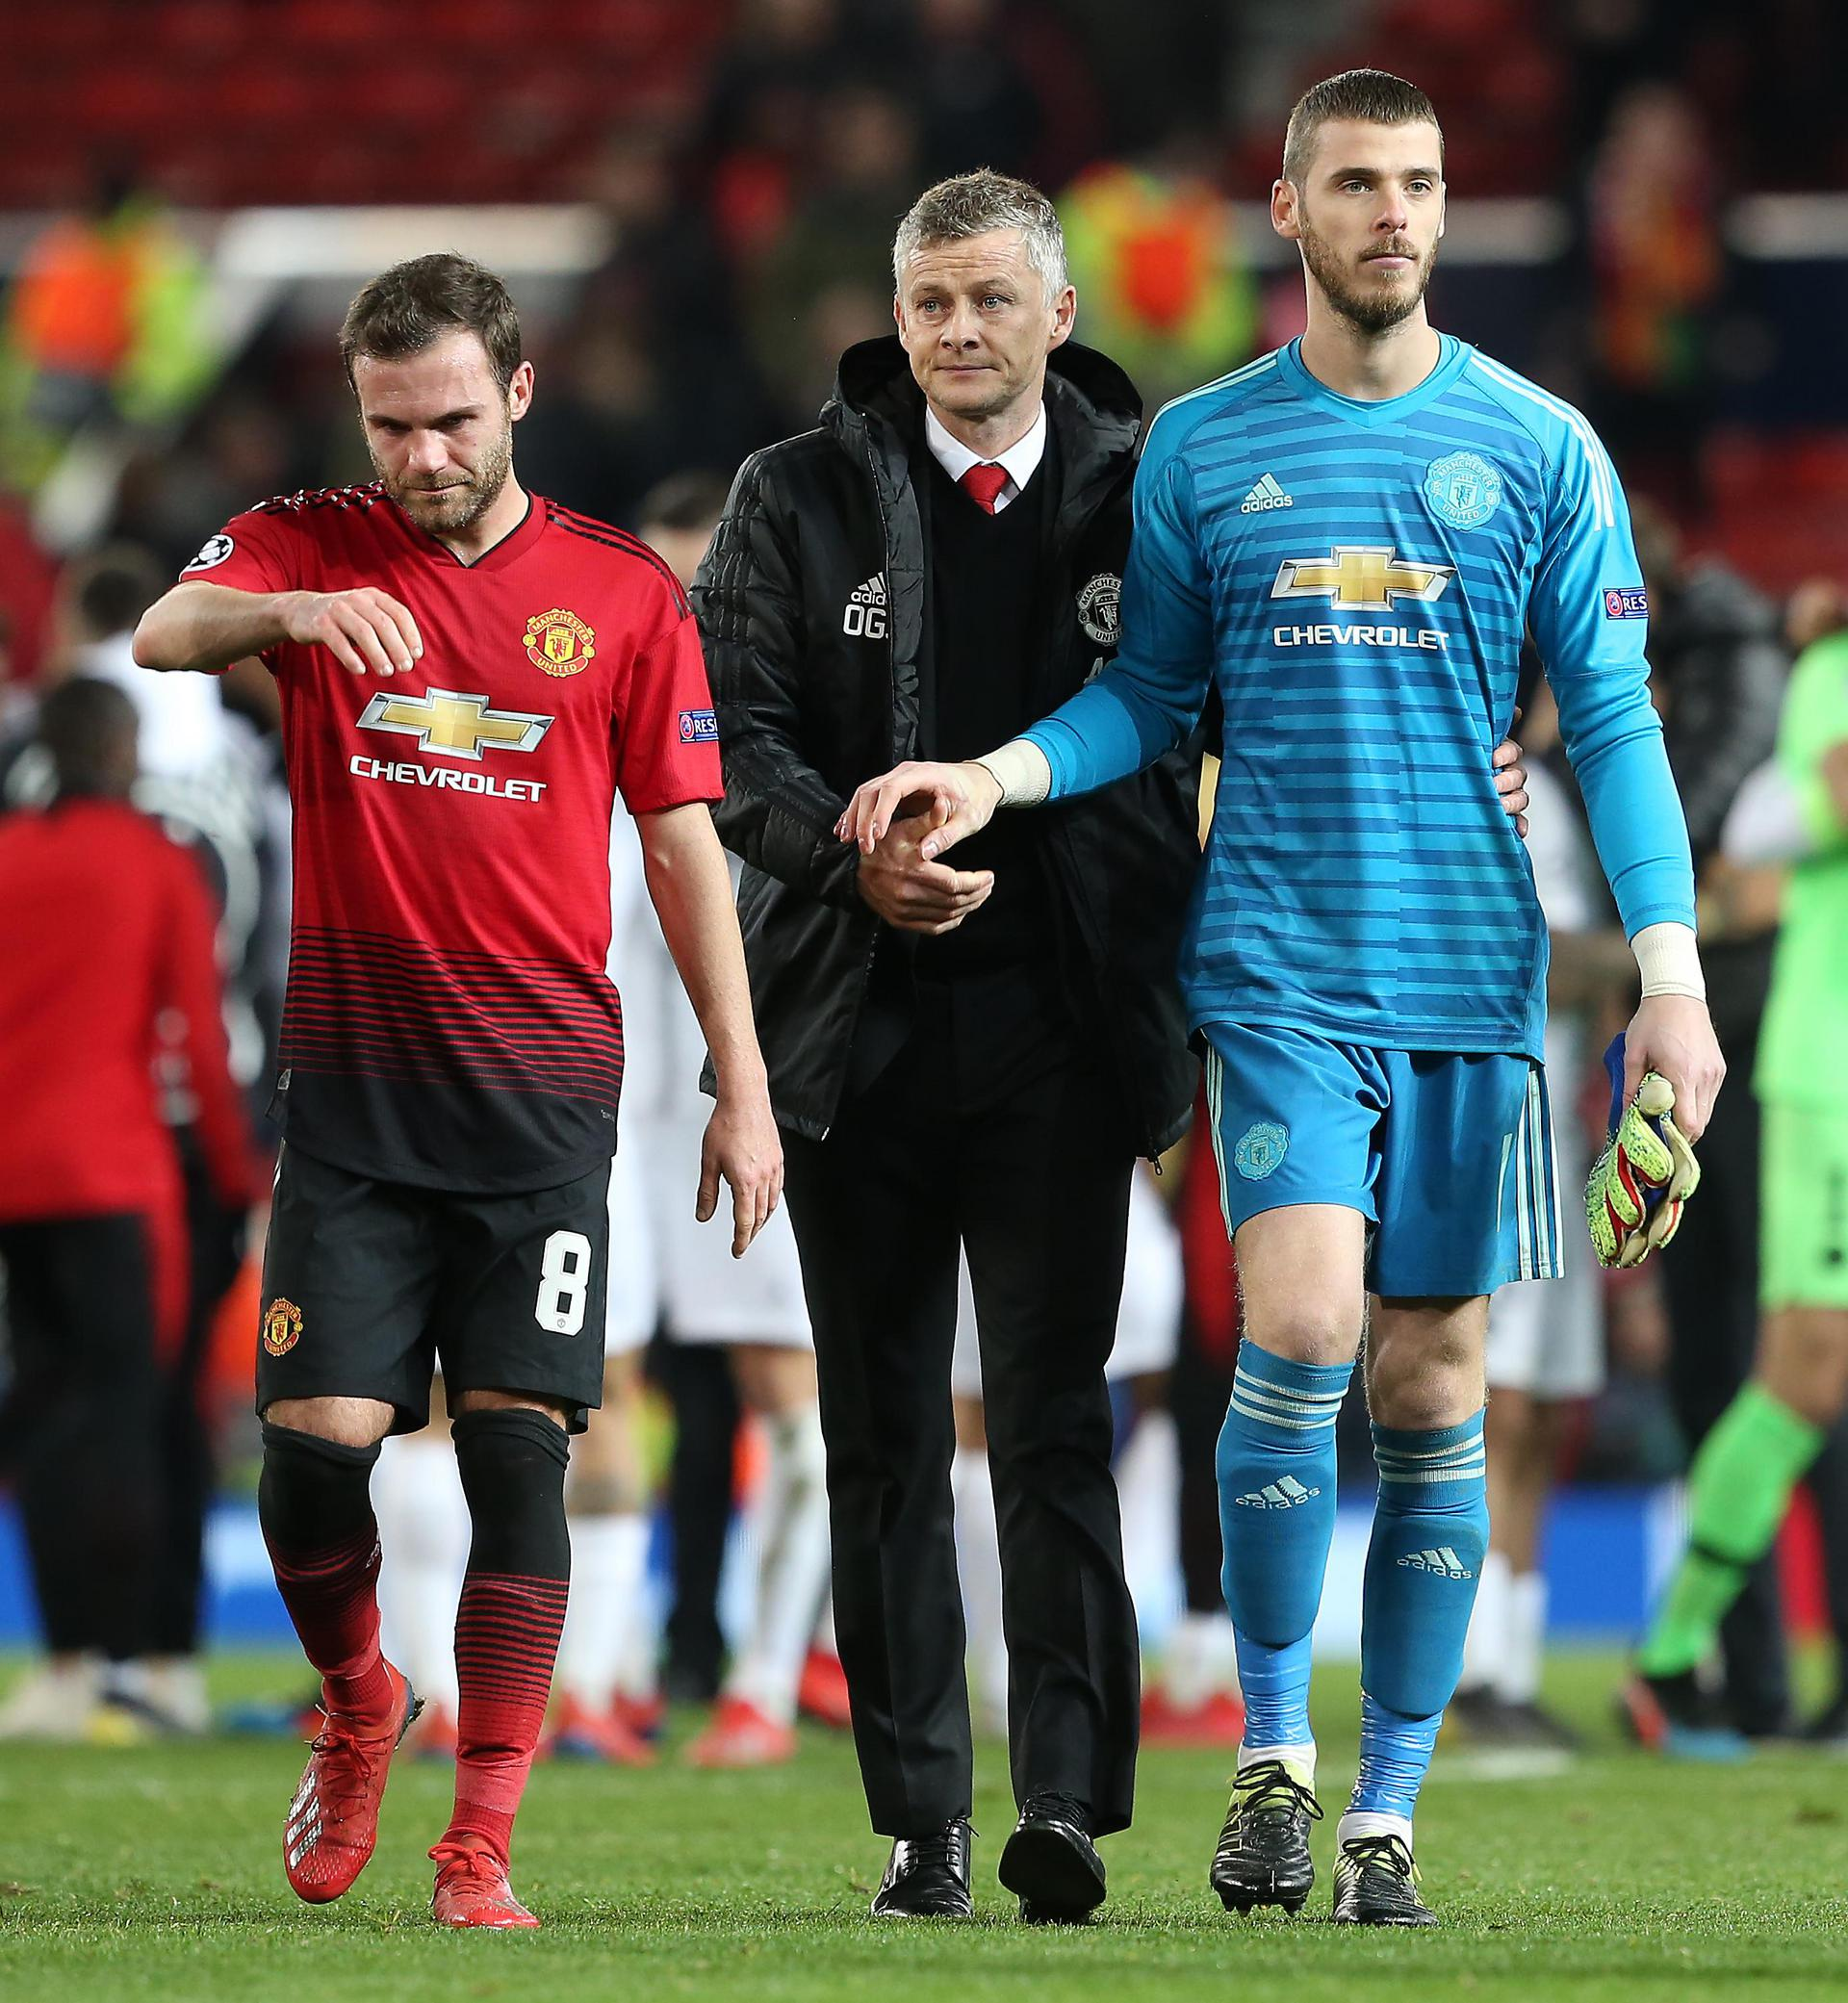 Juan Mata, Ole Gunnar Solskjaer and David De Gea.